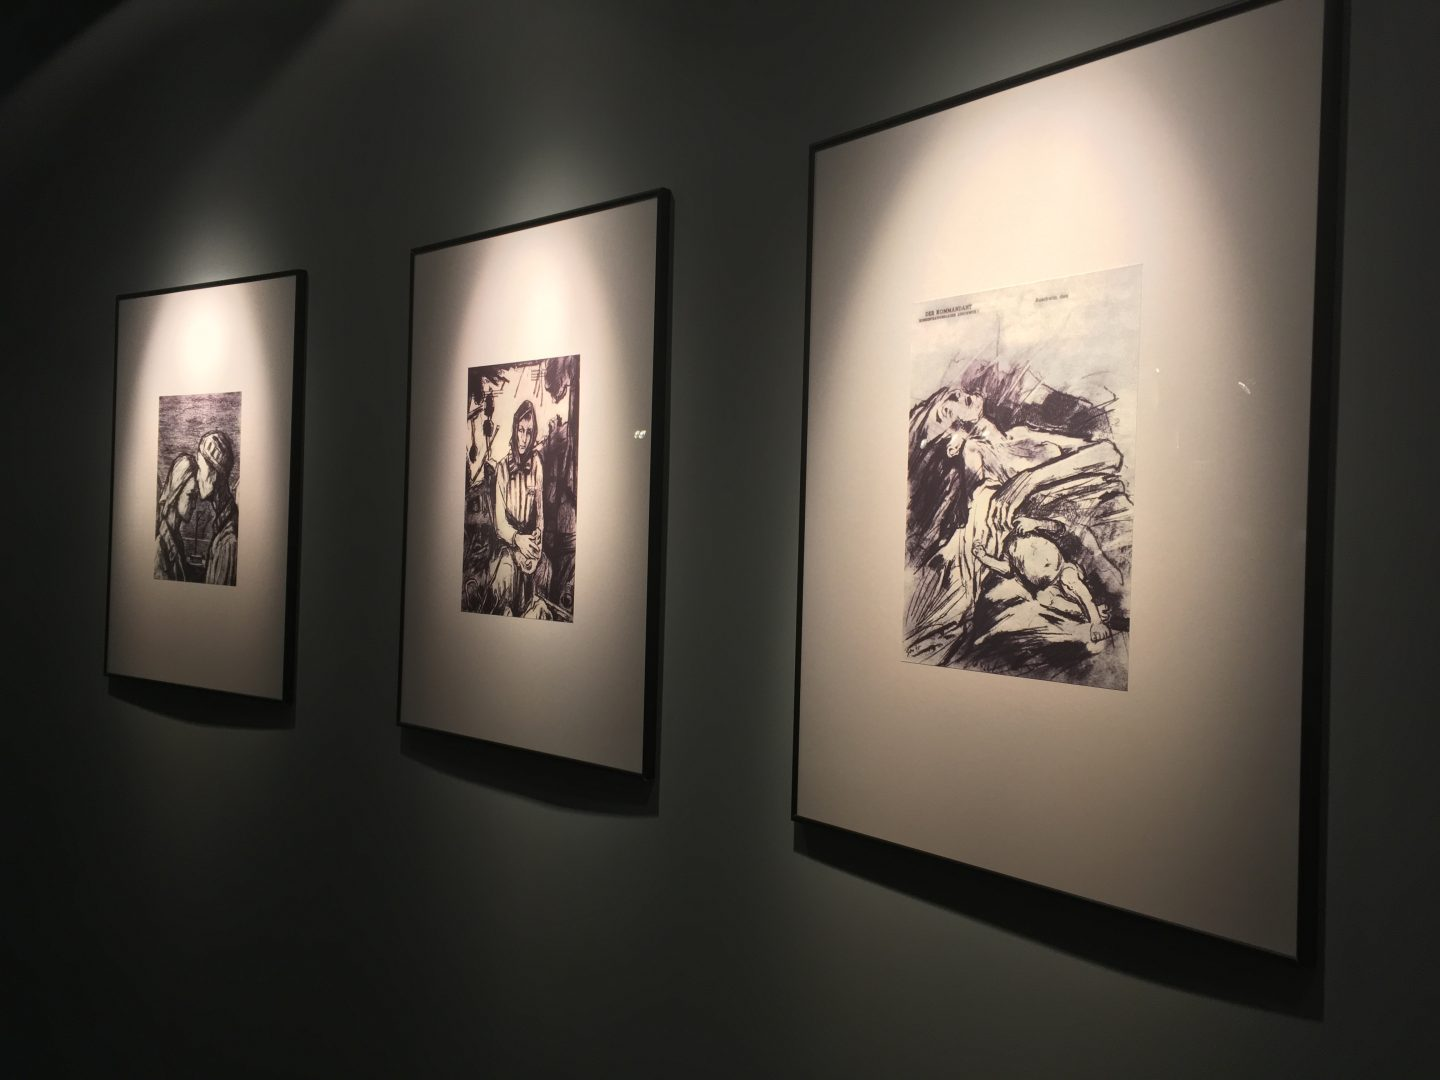 Artist drawings of Auschwitz victims on the walls of Auschwitz exhibition